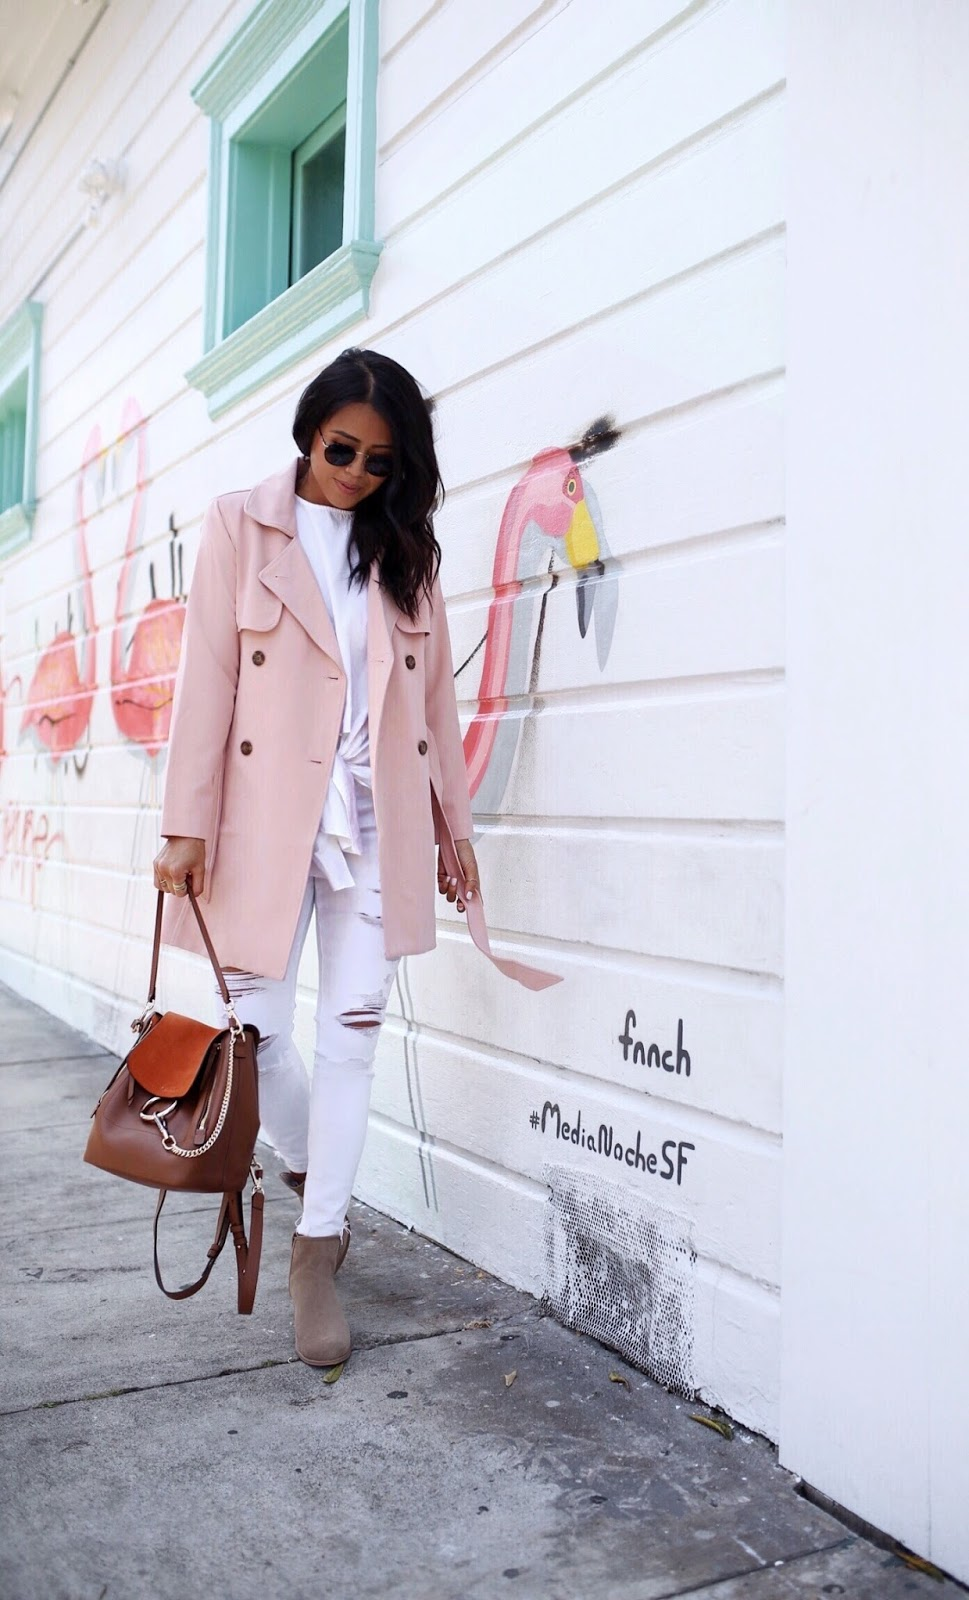 Pink Trench Coat Gypsy Tan Media Noche San Francisco